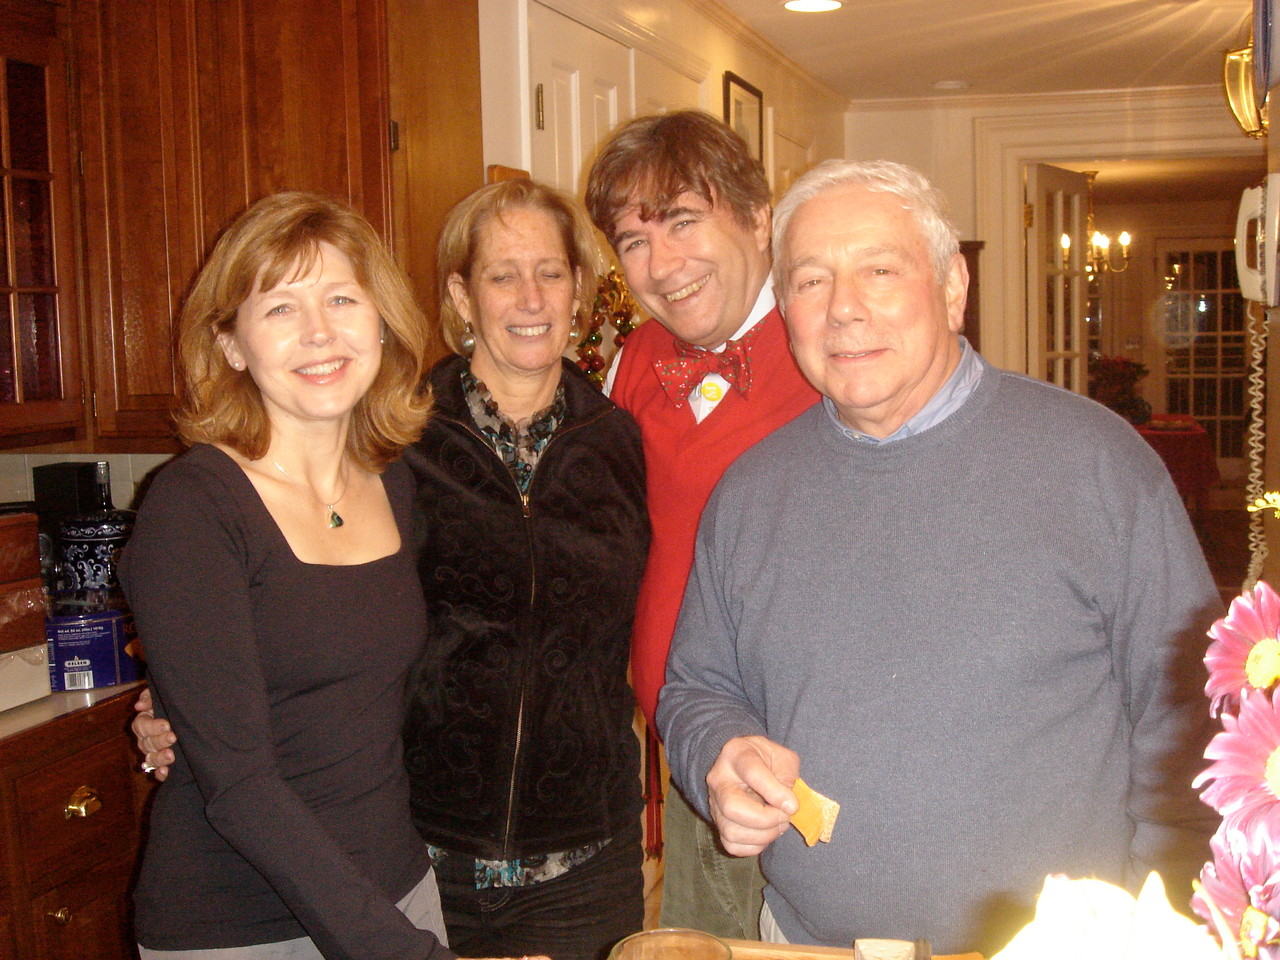 Barbara,Leslie (friend from California), John, & Don at our home, 2011